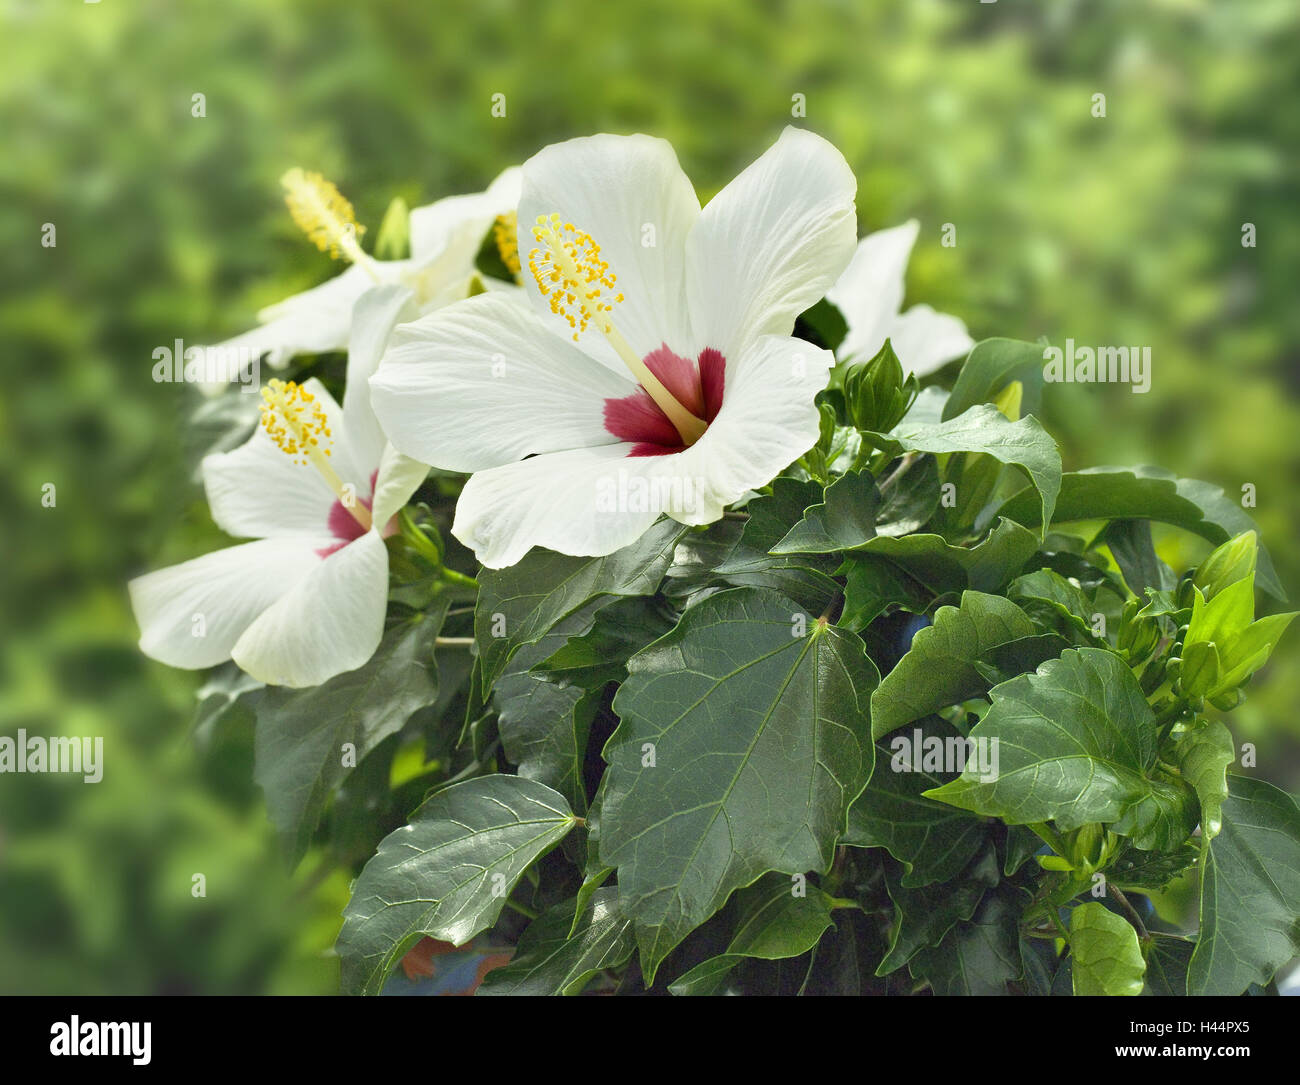 Garden, hibiscus, blossoms, white-red, plants, bloomer, mallow plant, shrub marsh mallow, ornamental plant, flower - Stock Image